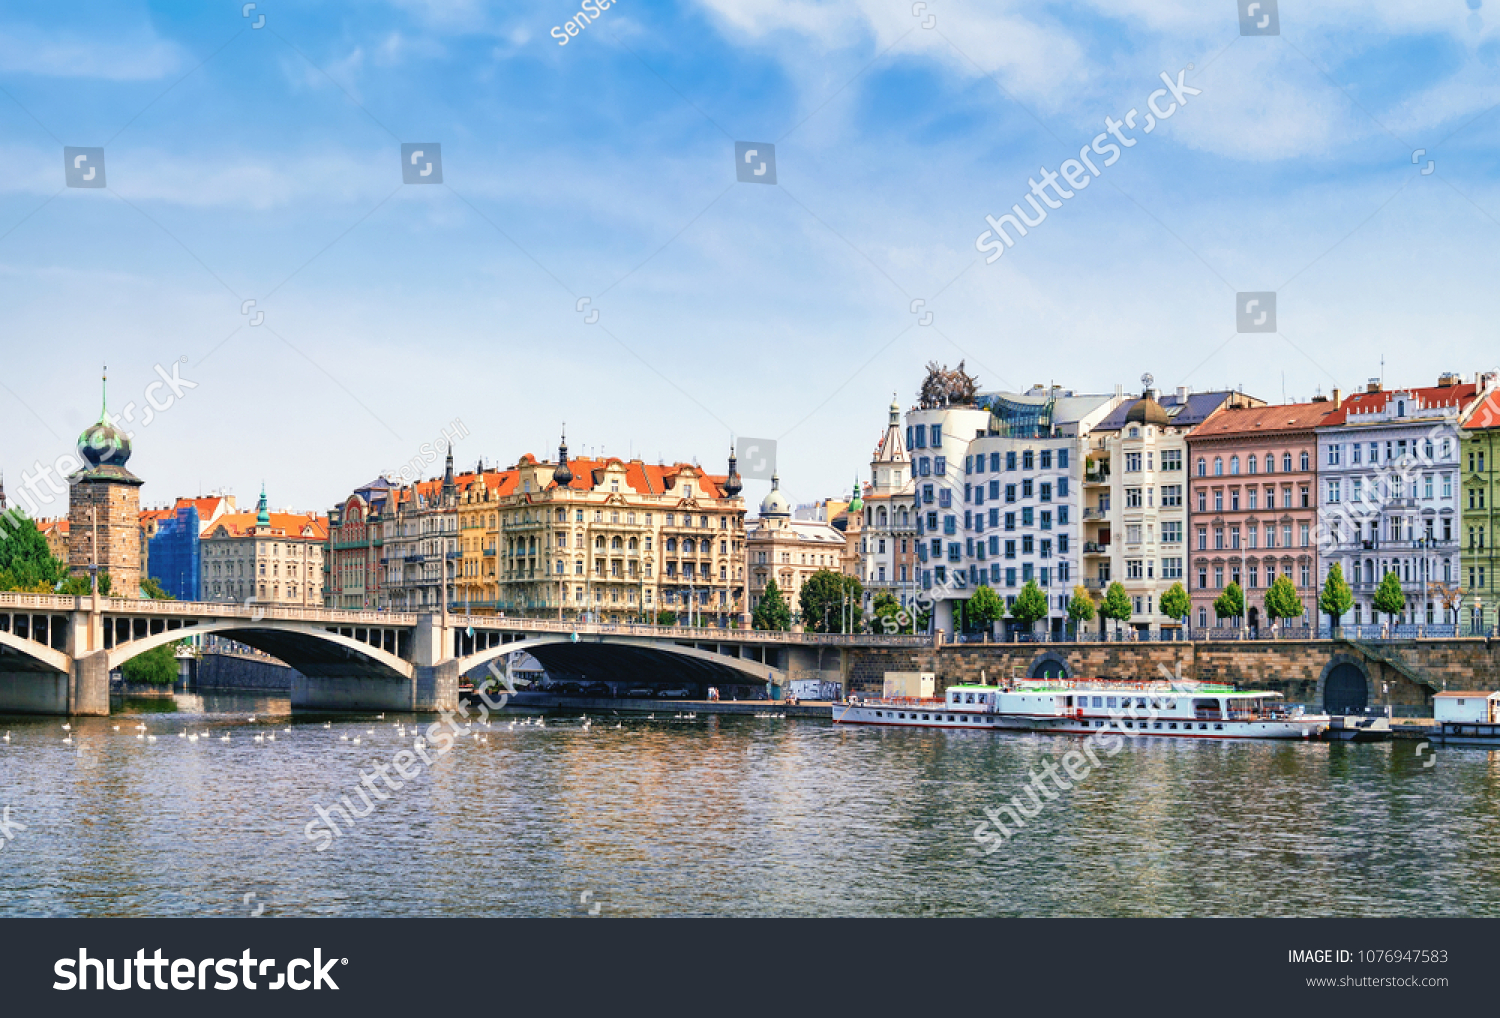 PRAGUE, CZECH REPUBLIC - AUGUST 9, 2015: Vltava view with Dancing House at right #1076947583